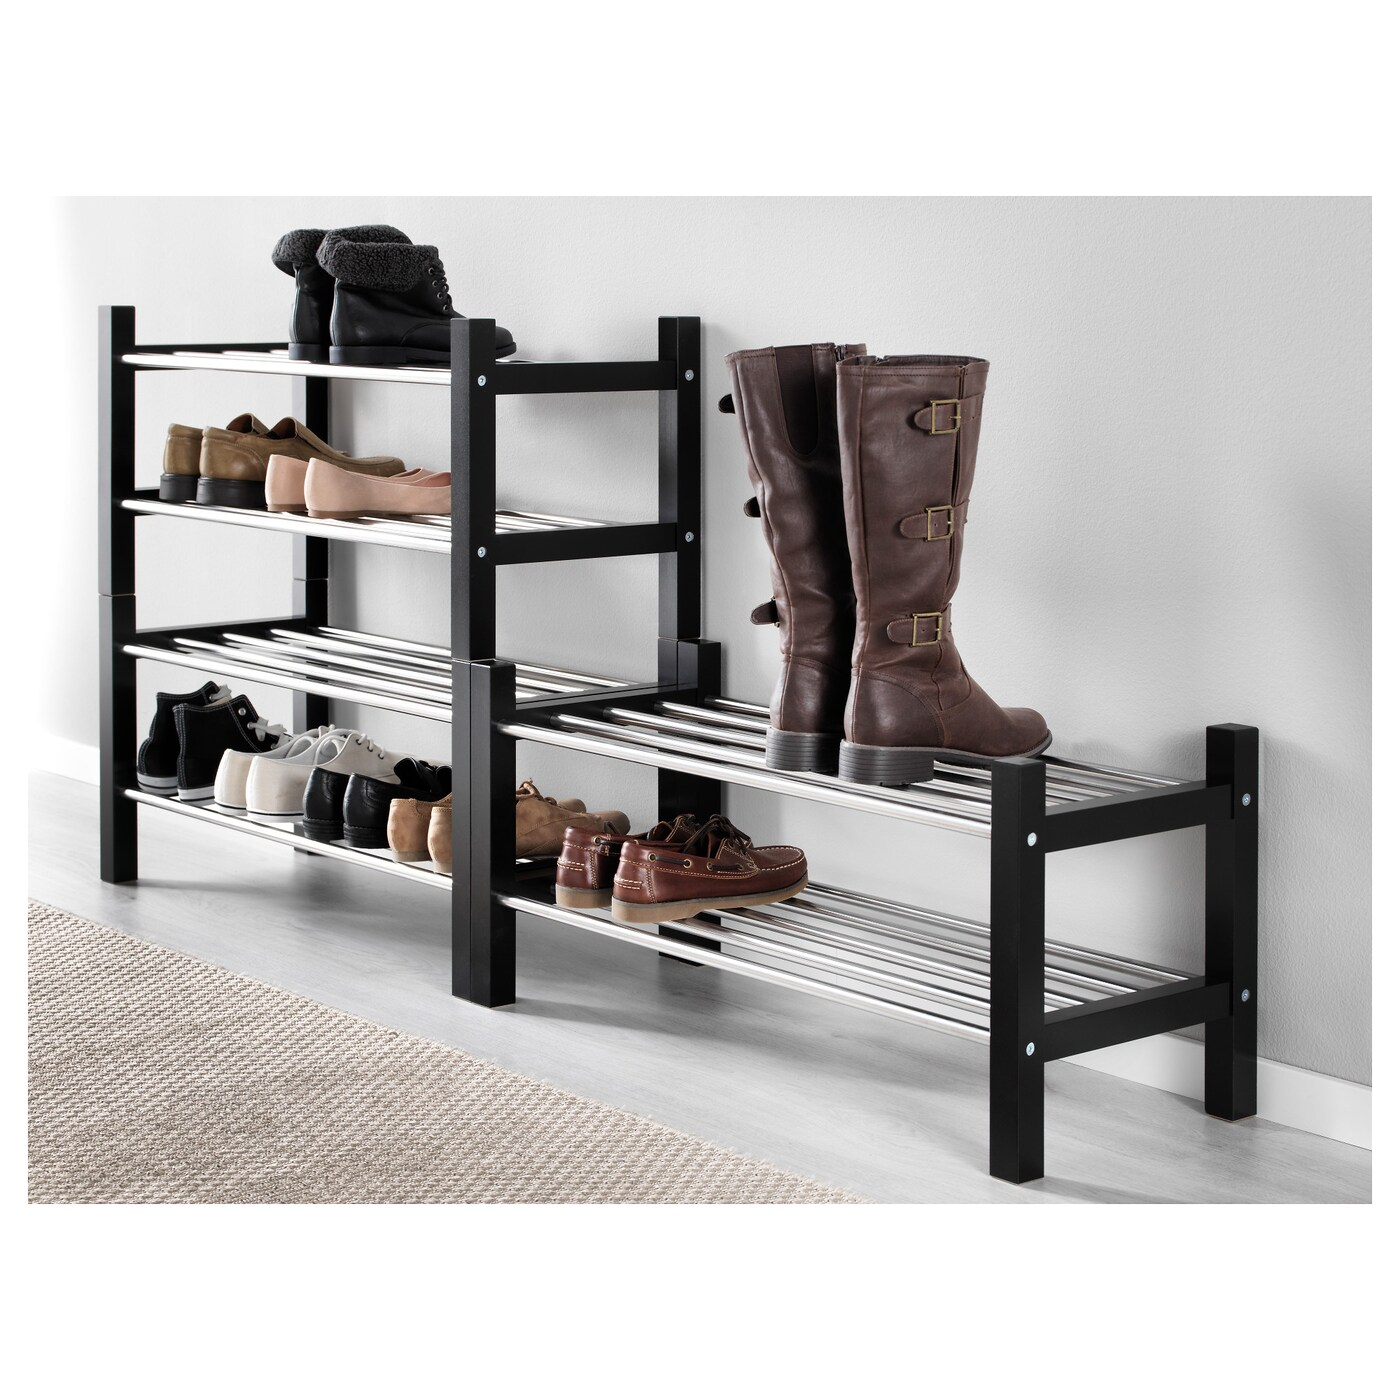 tjusig tag re chaussures noir 79 cm ikea. Black Bedroom Furniture Sets. Home Design Ideas